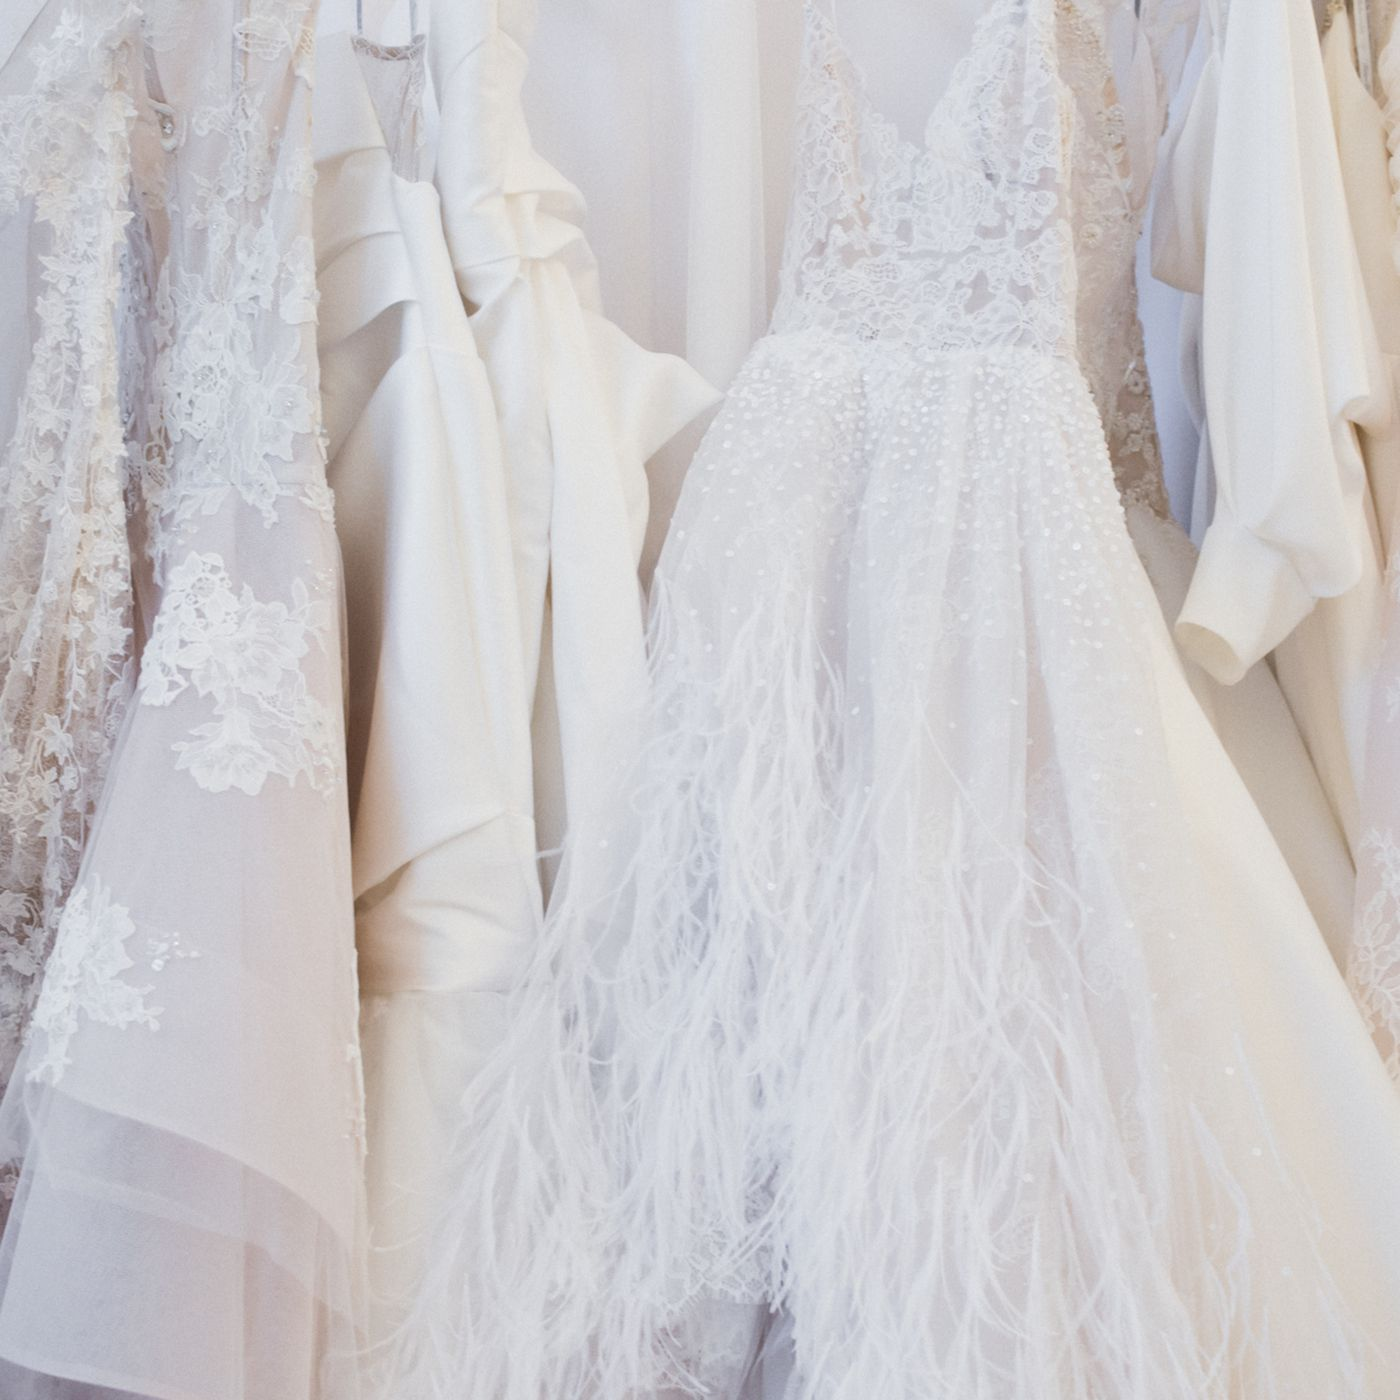 Where to Resell Your Wedding Dress - Racked